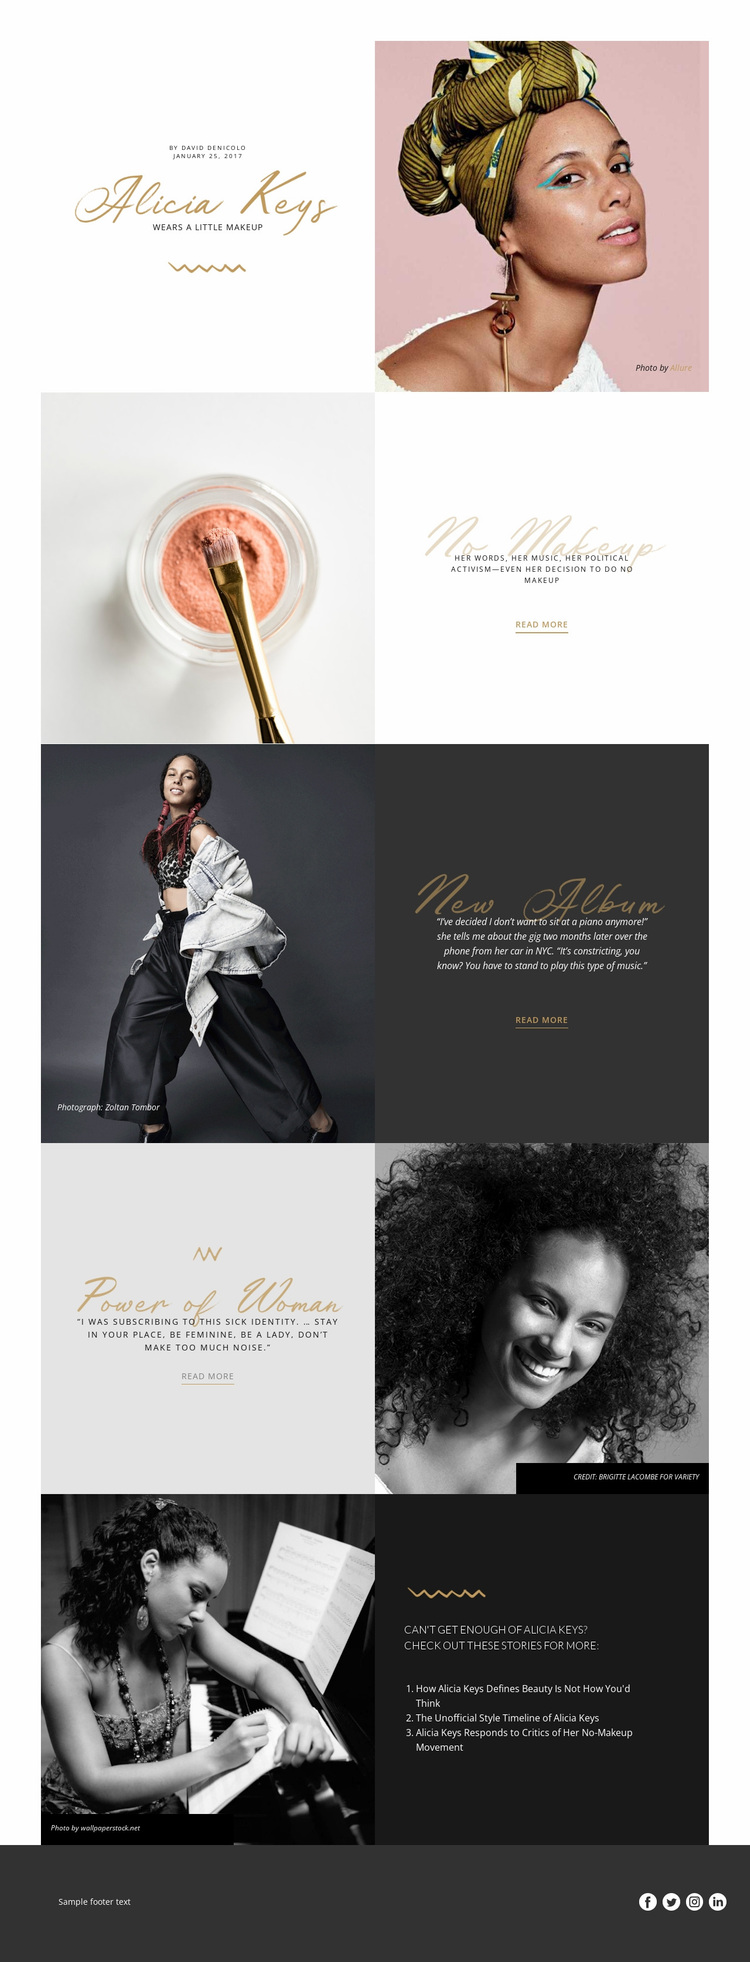 Alicia Keys Website Design